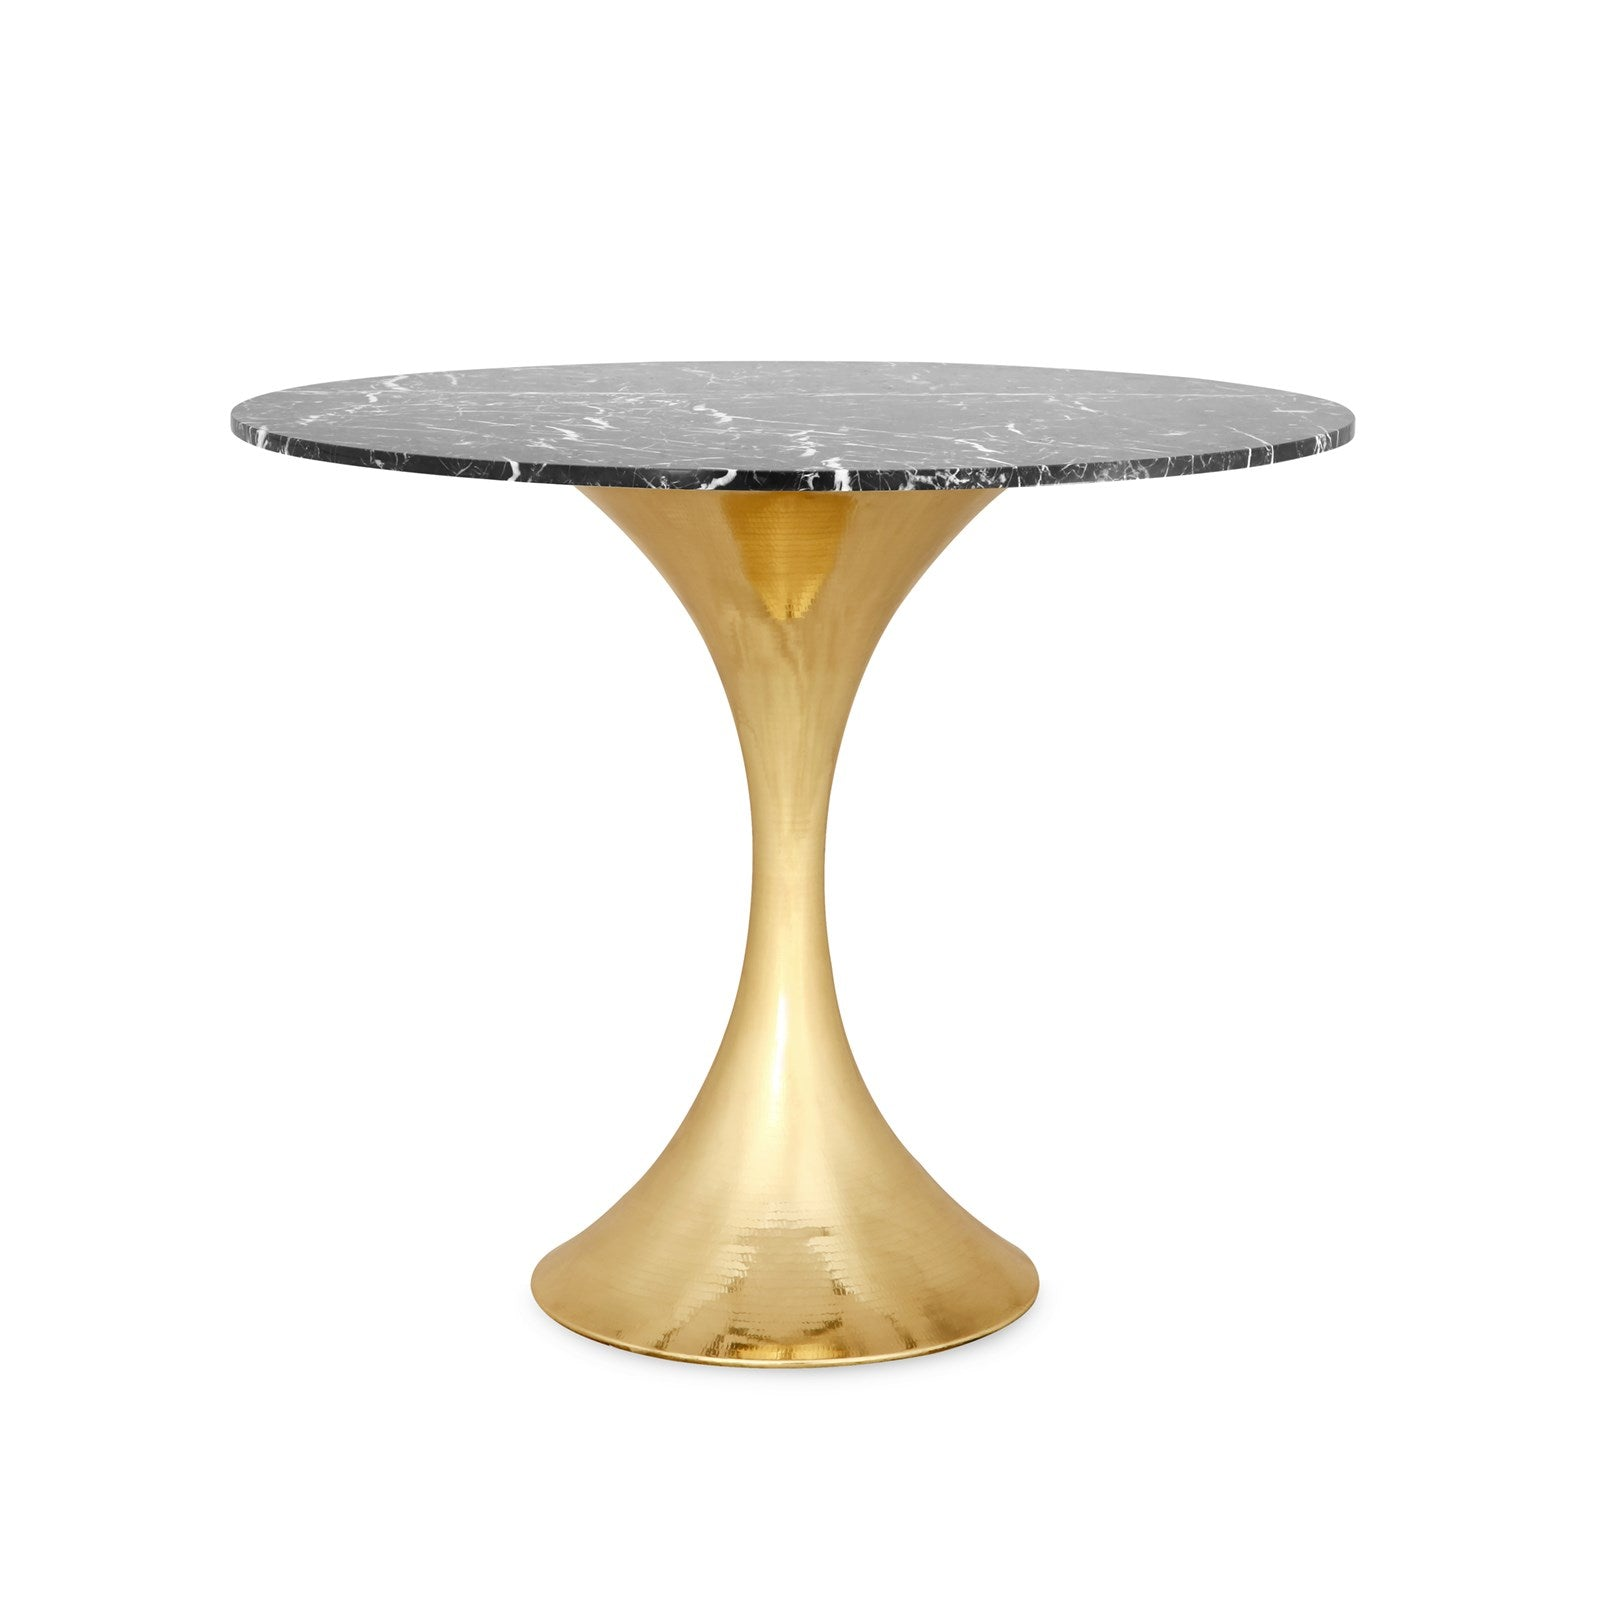 Repoussé Small Round Table